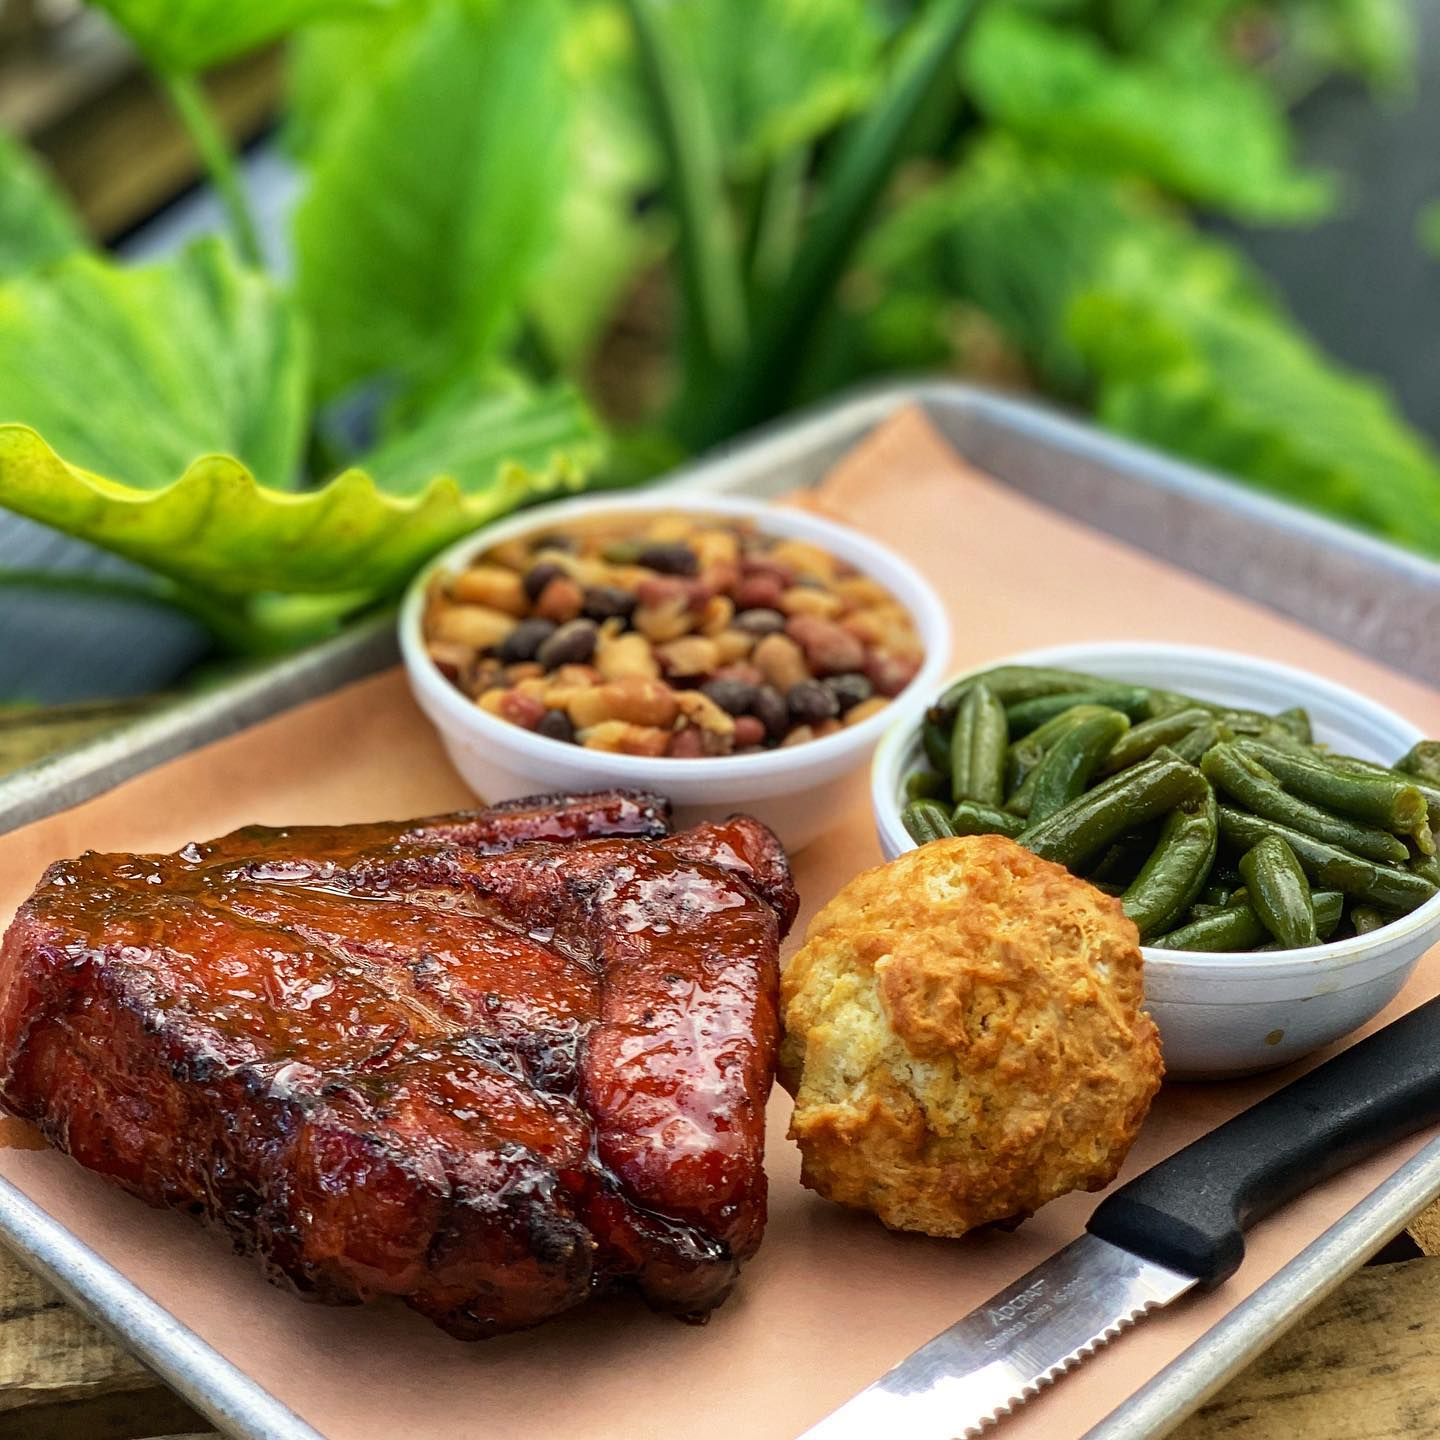 jumbo pork chop marinated, slow smoked, and finished with our sour orange sauce made with fresh squeezed local sour oranges